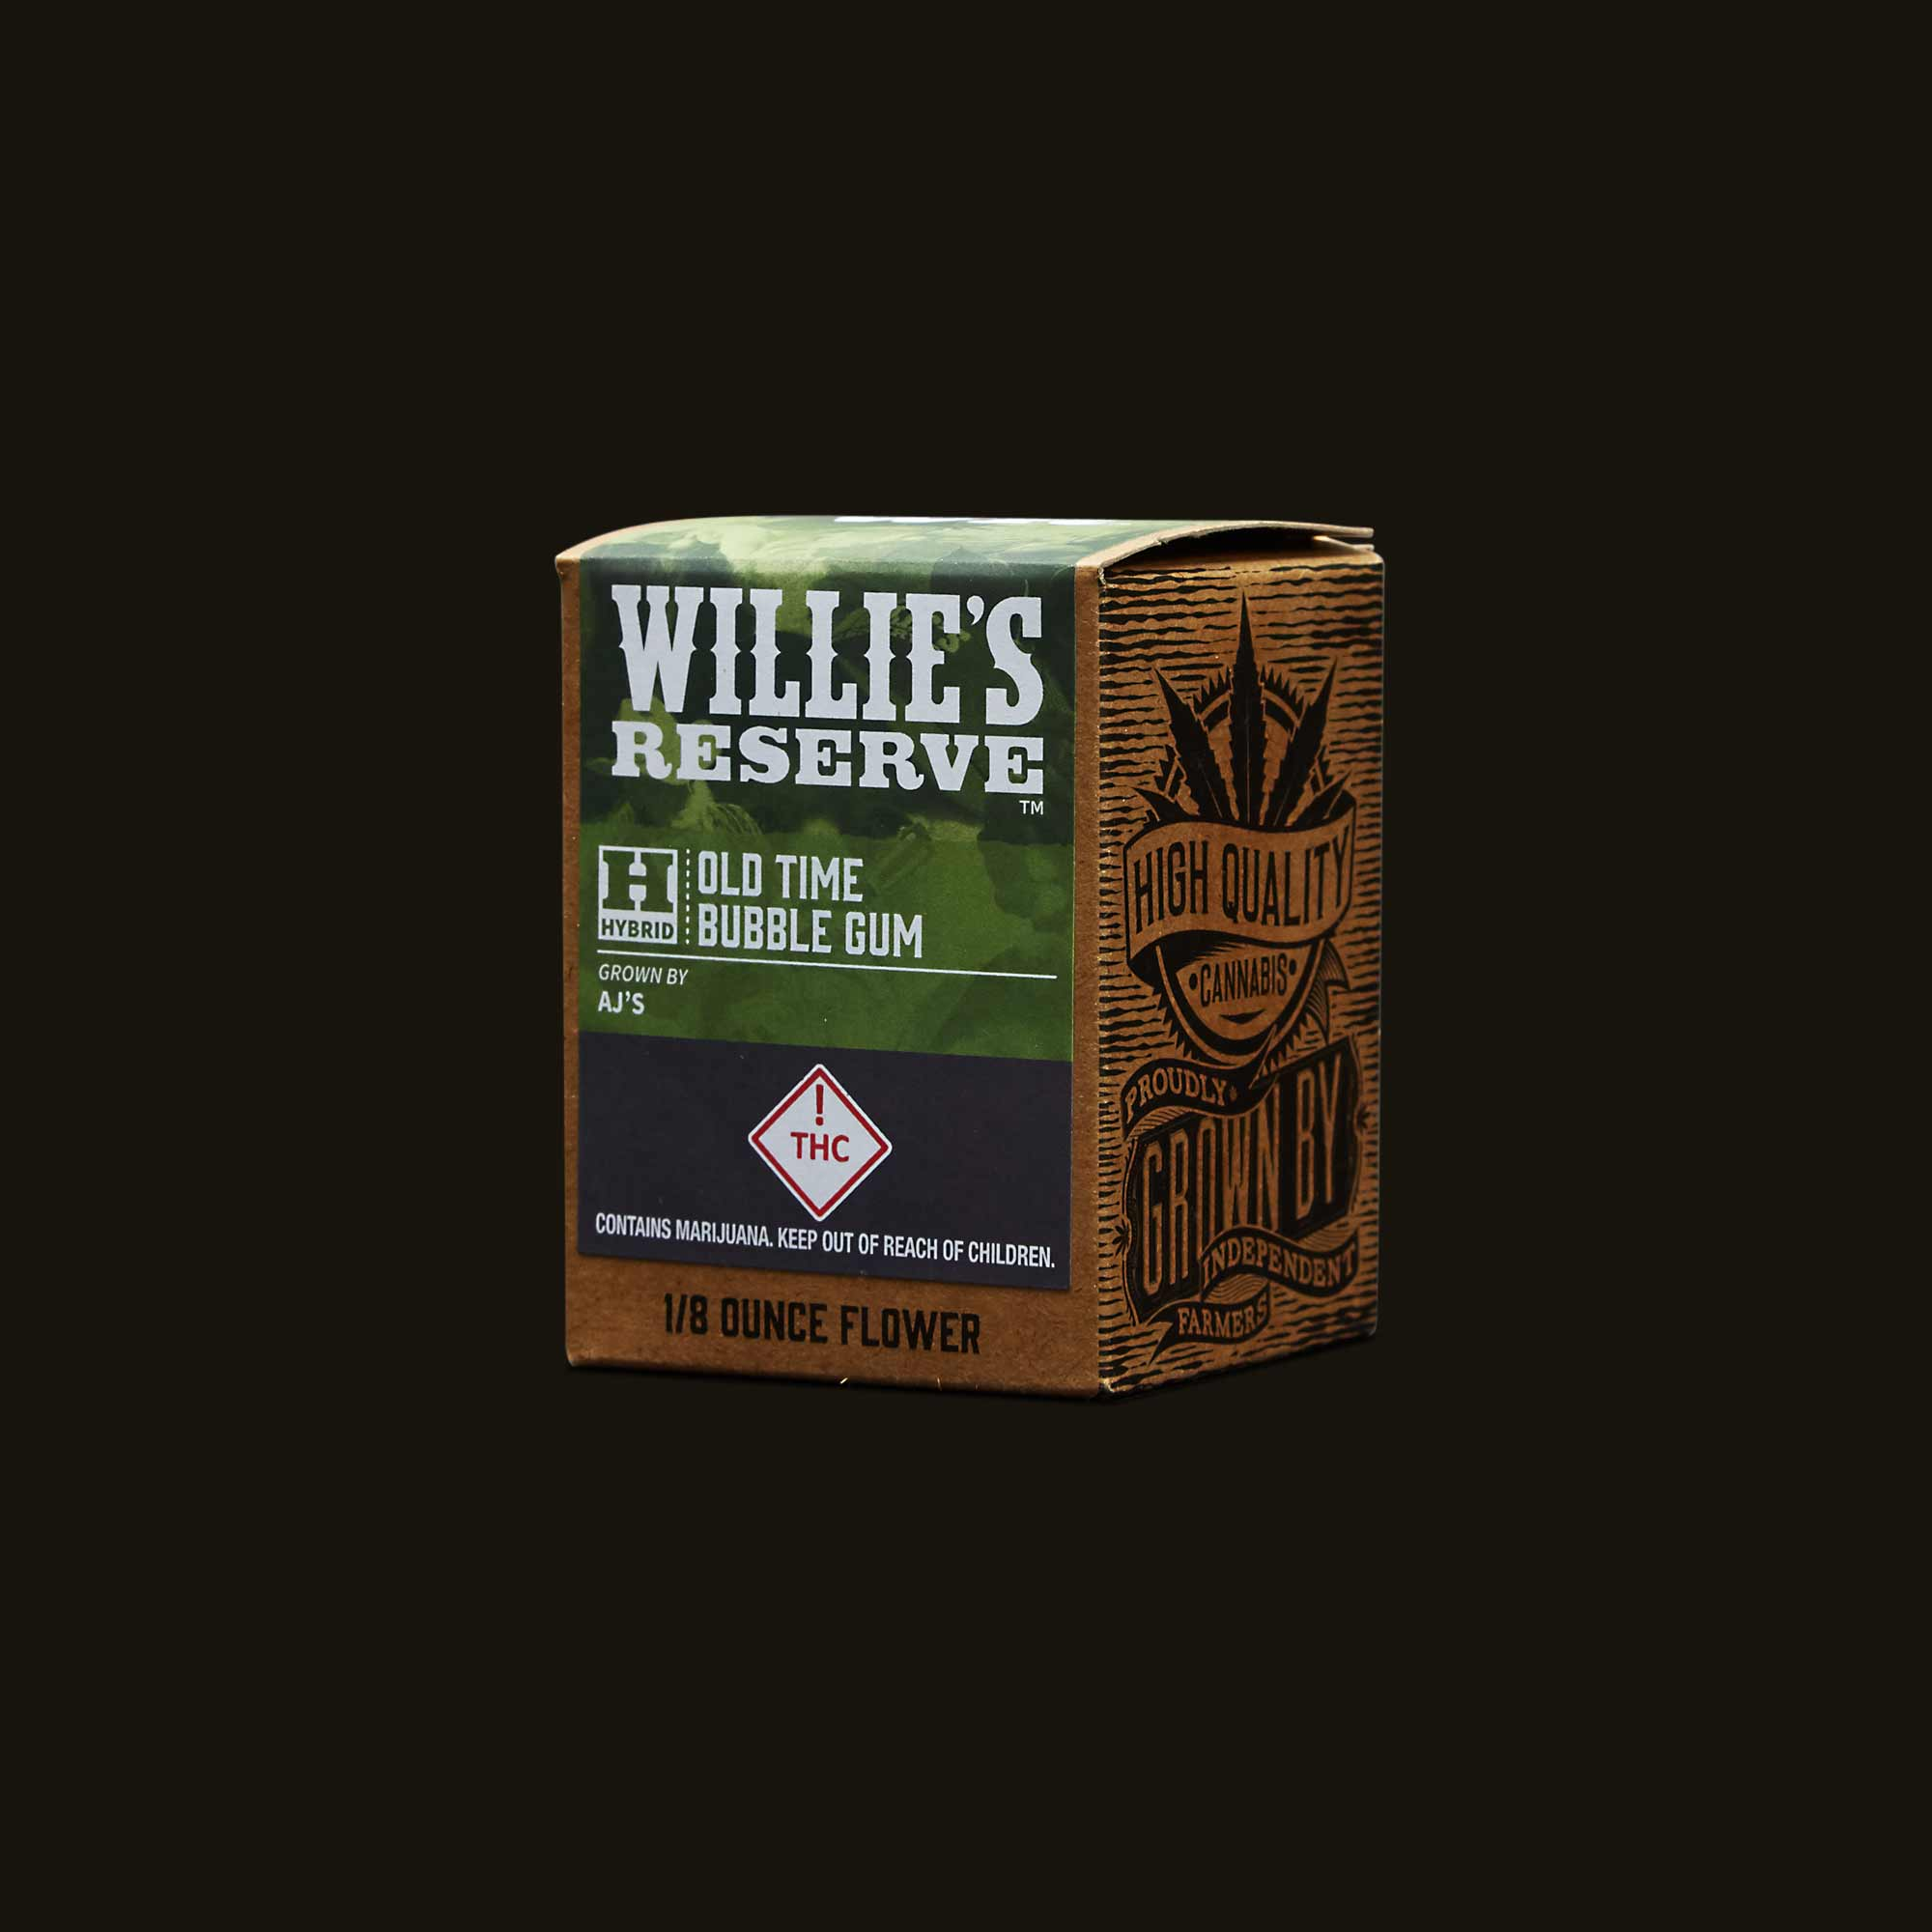 Willie's Reserve Old Time Bubble Gum